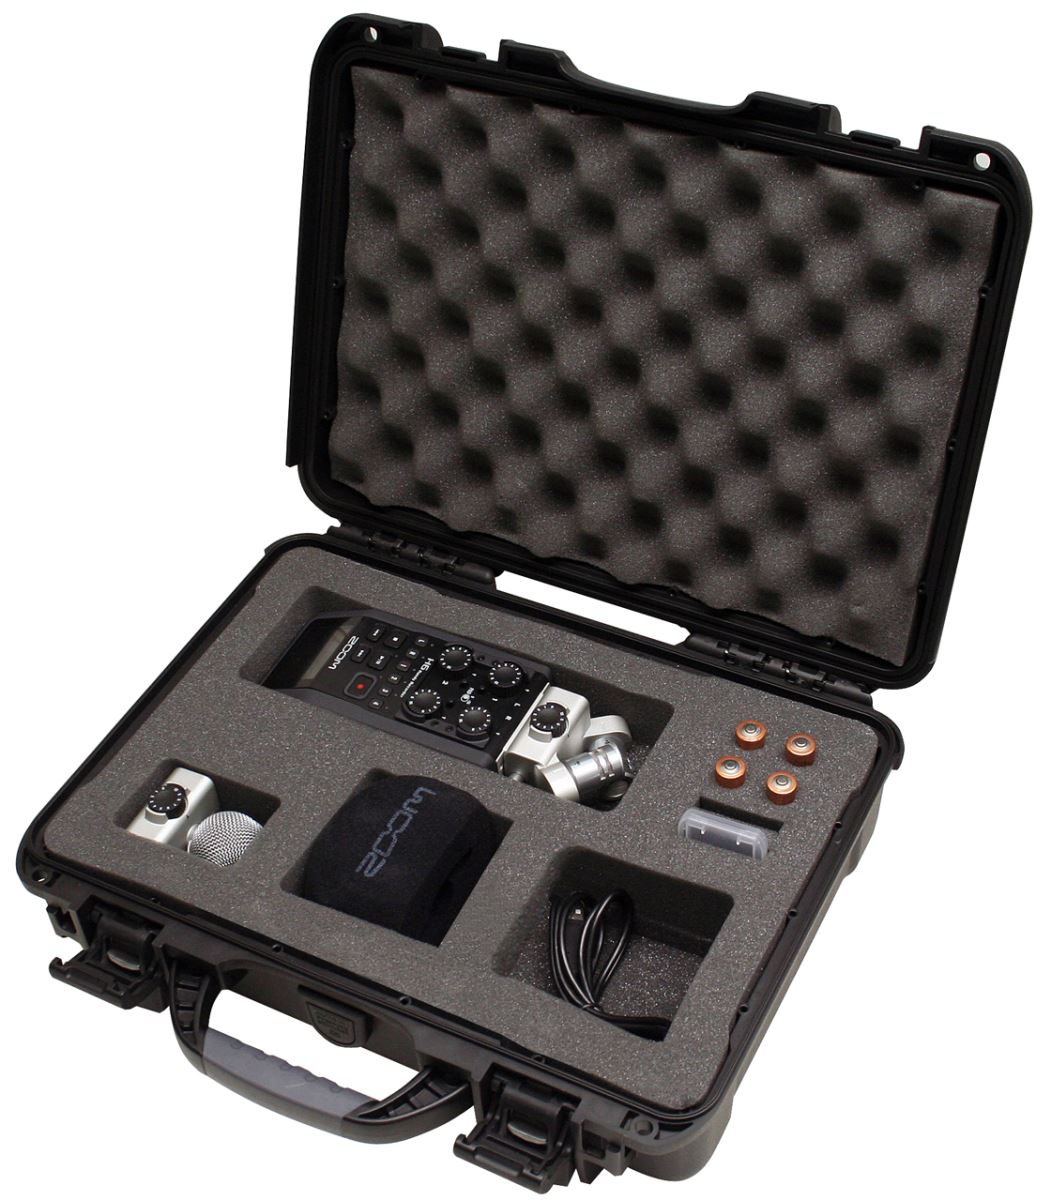 Gator Cases GU-ZOOMH6-WP Black Waterproof Injection Molded Case Fits Zoom H6 Recorder & Accessories